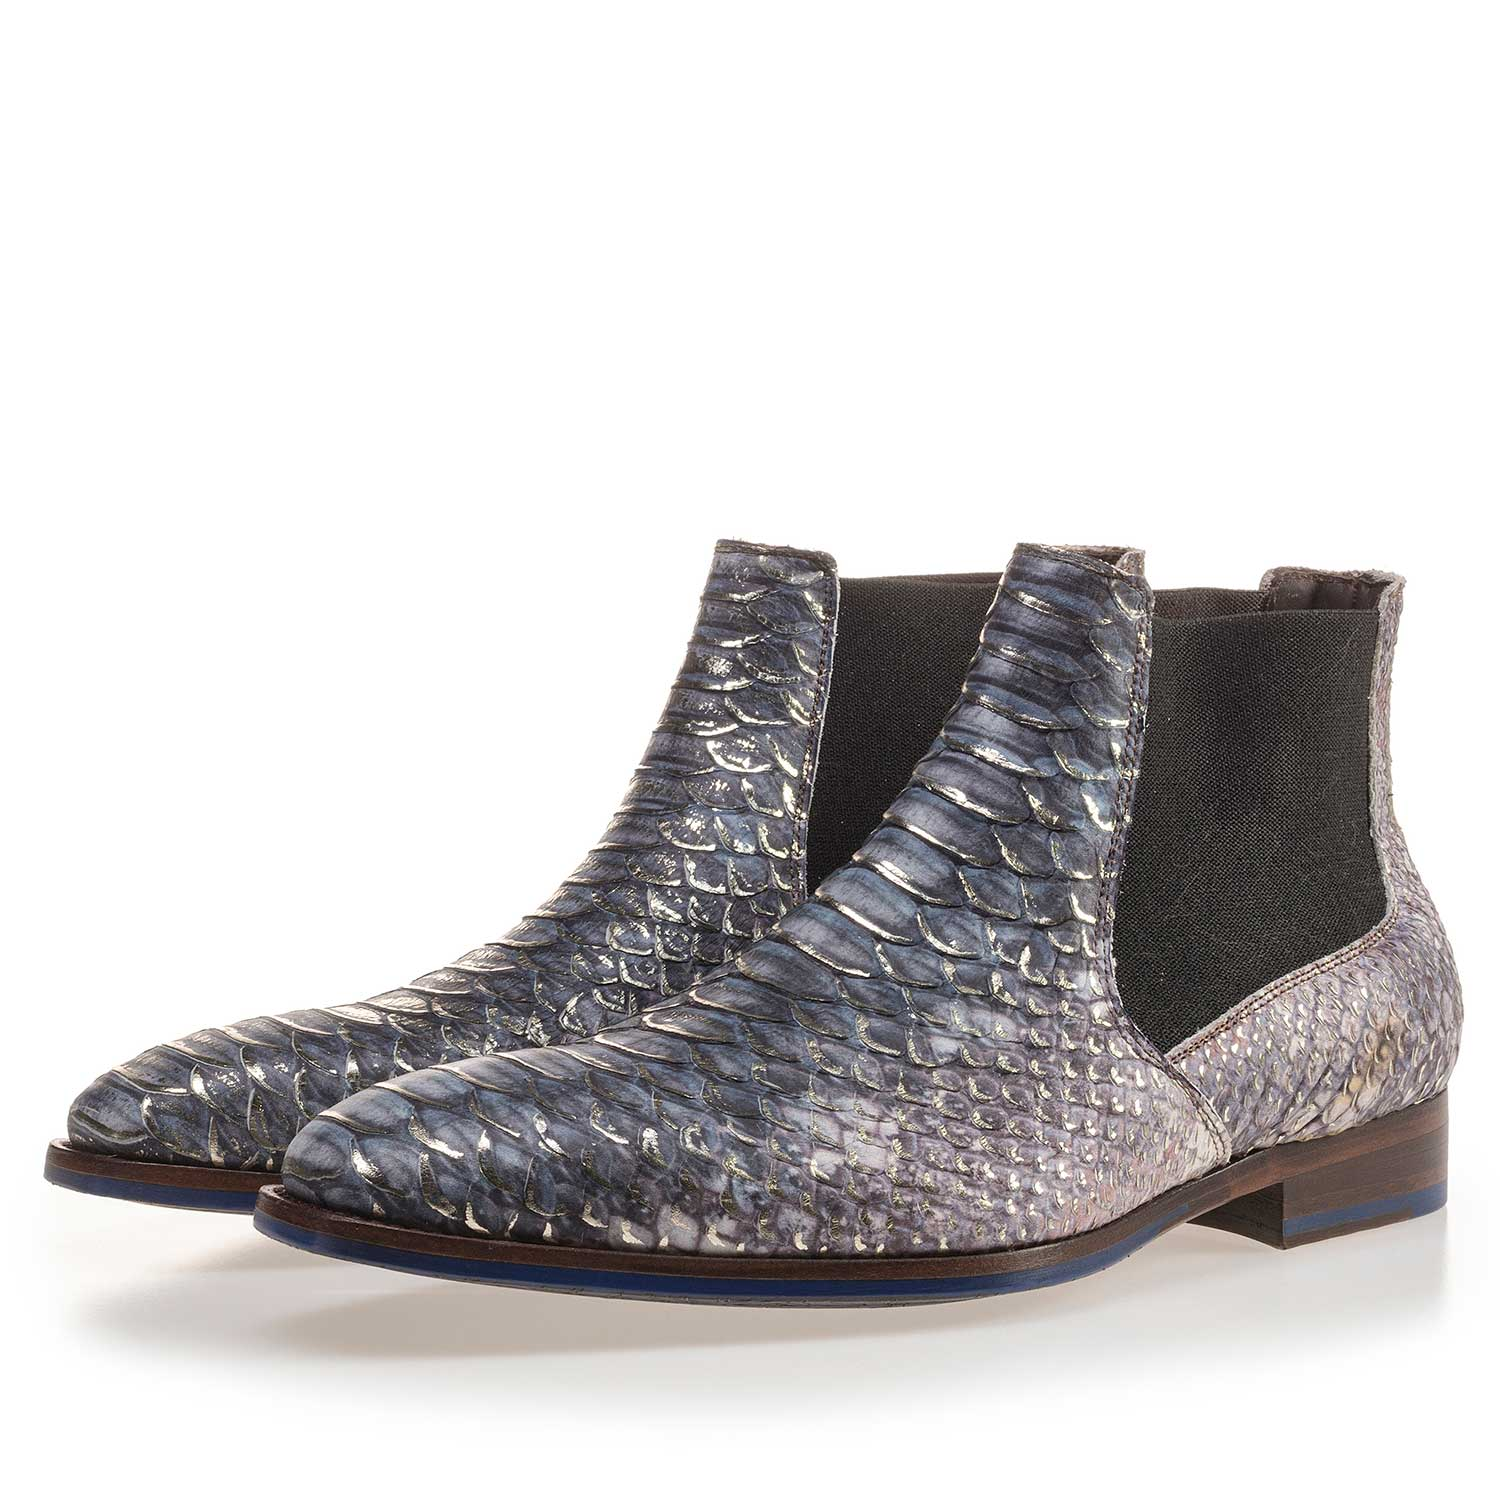 10179/00 - Premium blue Chelsea boot with a snake relief pattern